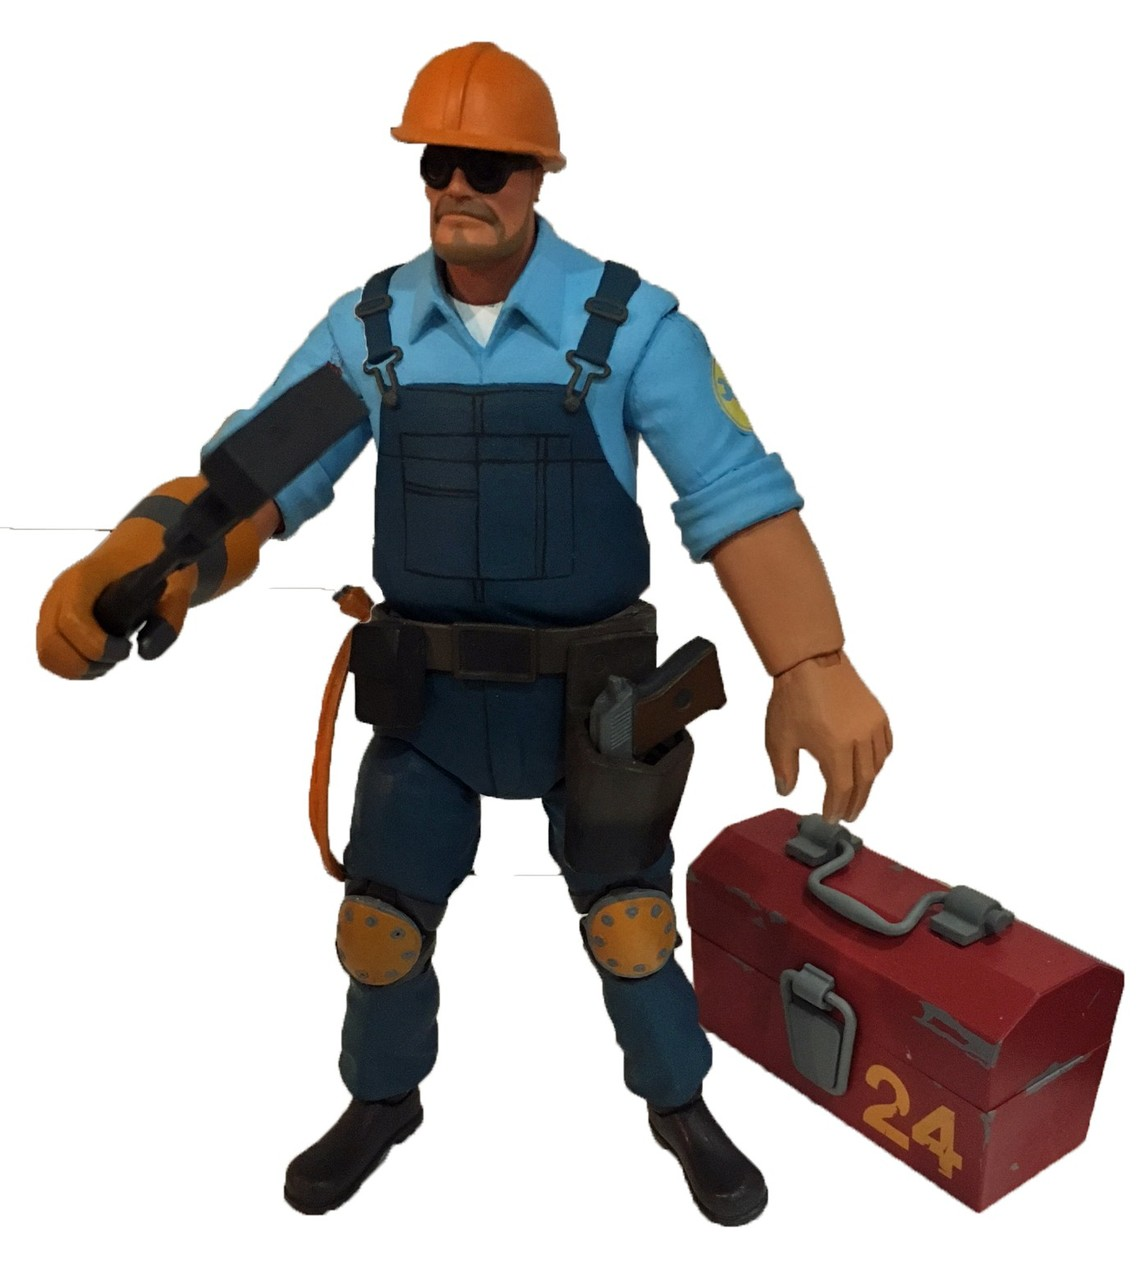 Neca TEAM FORTRESS 2 SERIES 3.5 Set of 2 Action Figures BLU THE ENGINEER /& SPY